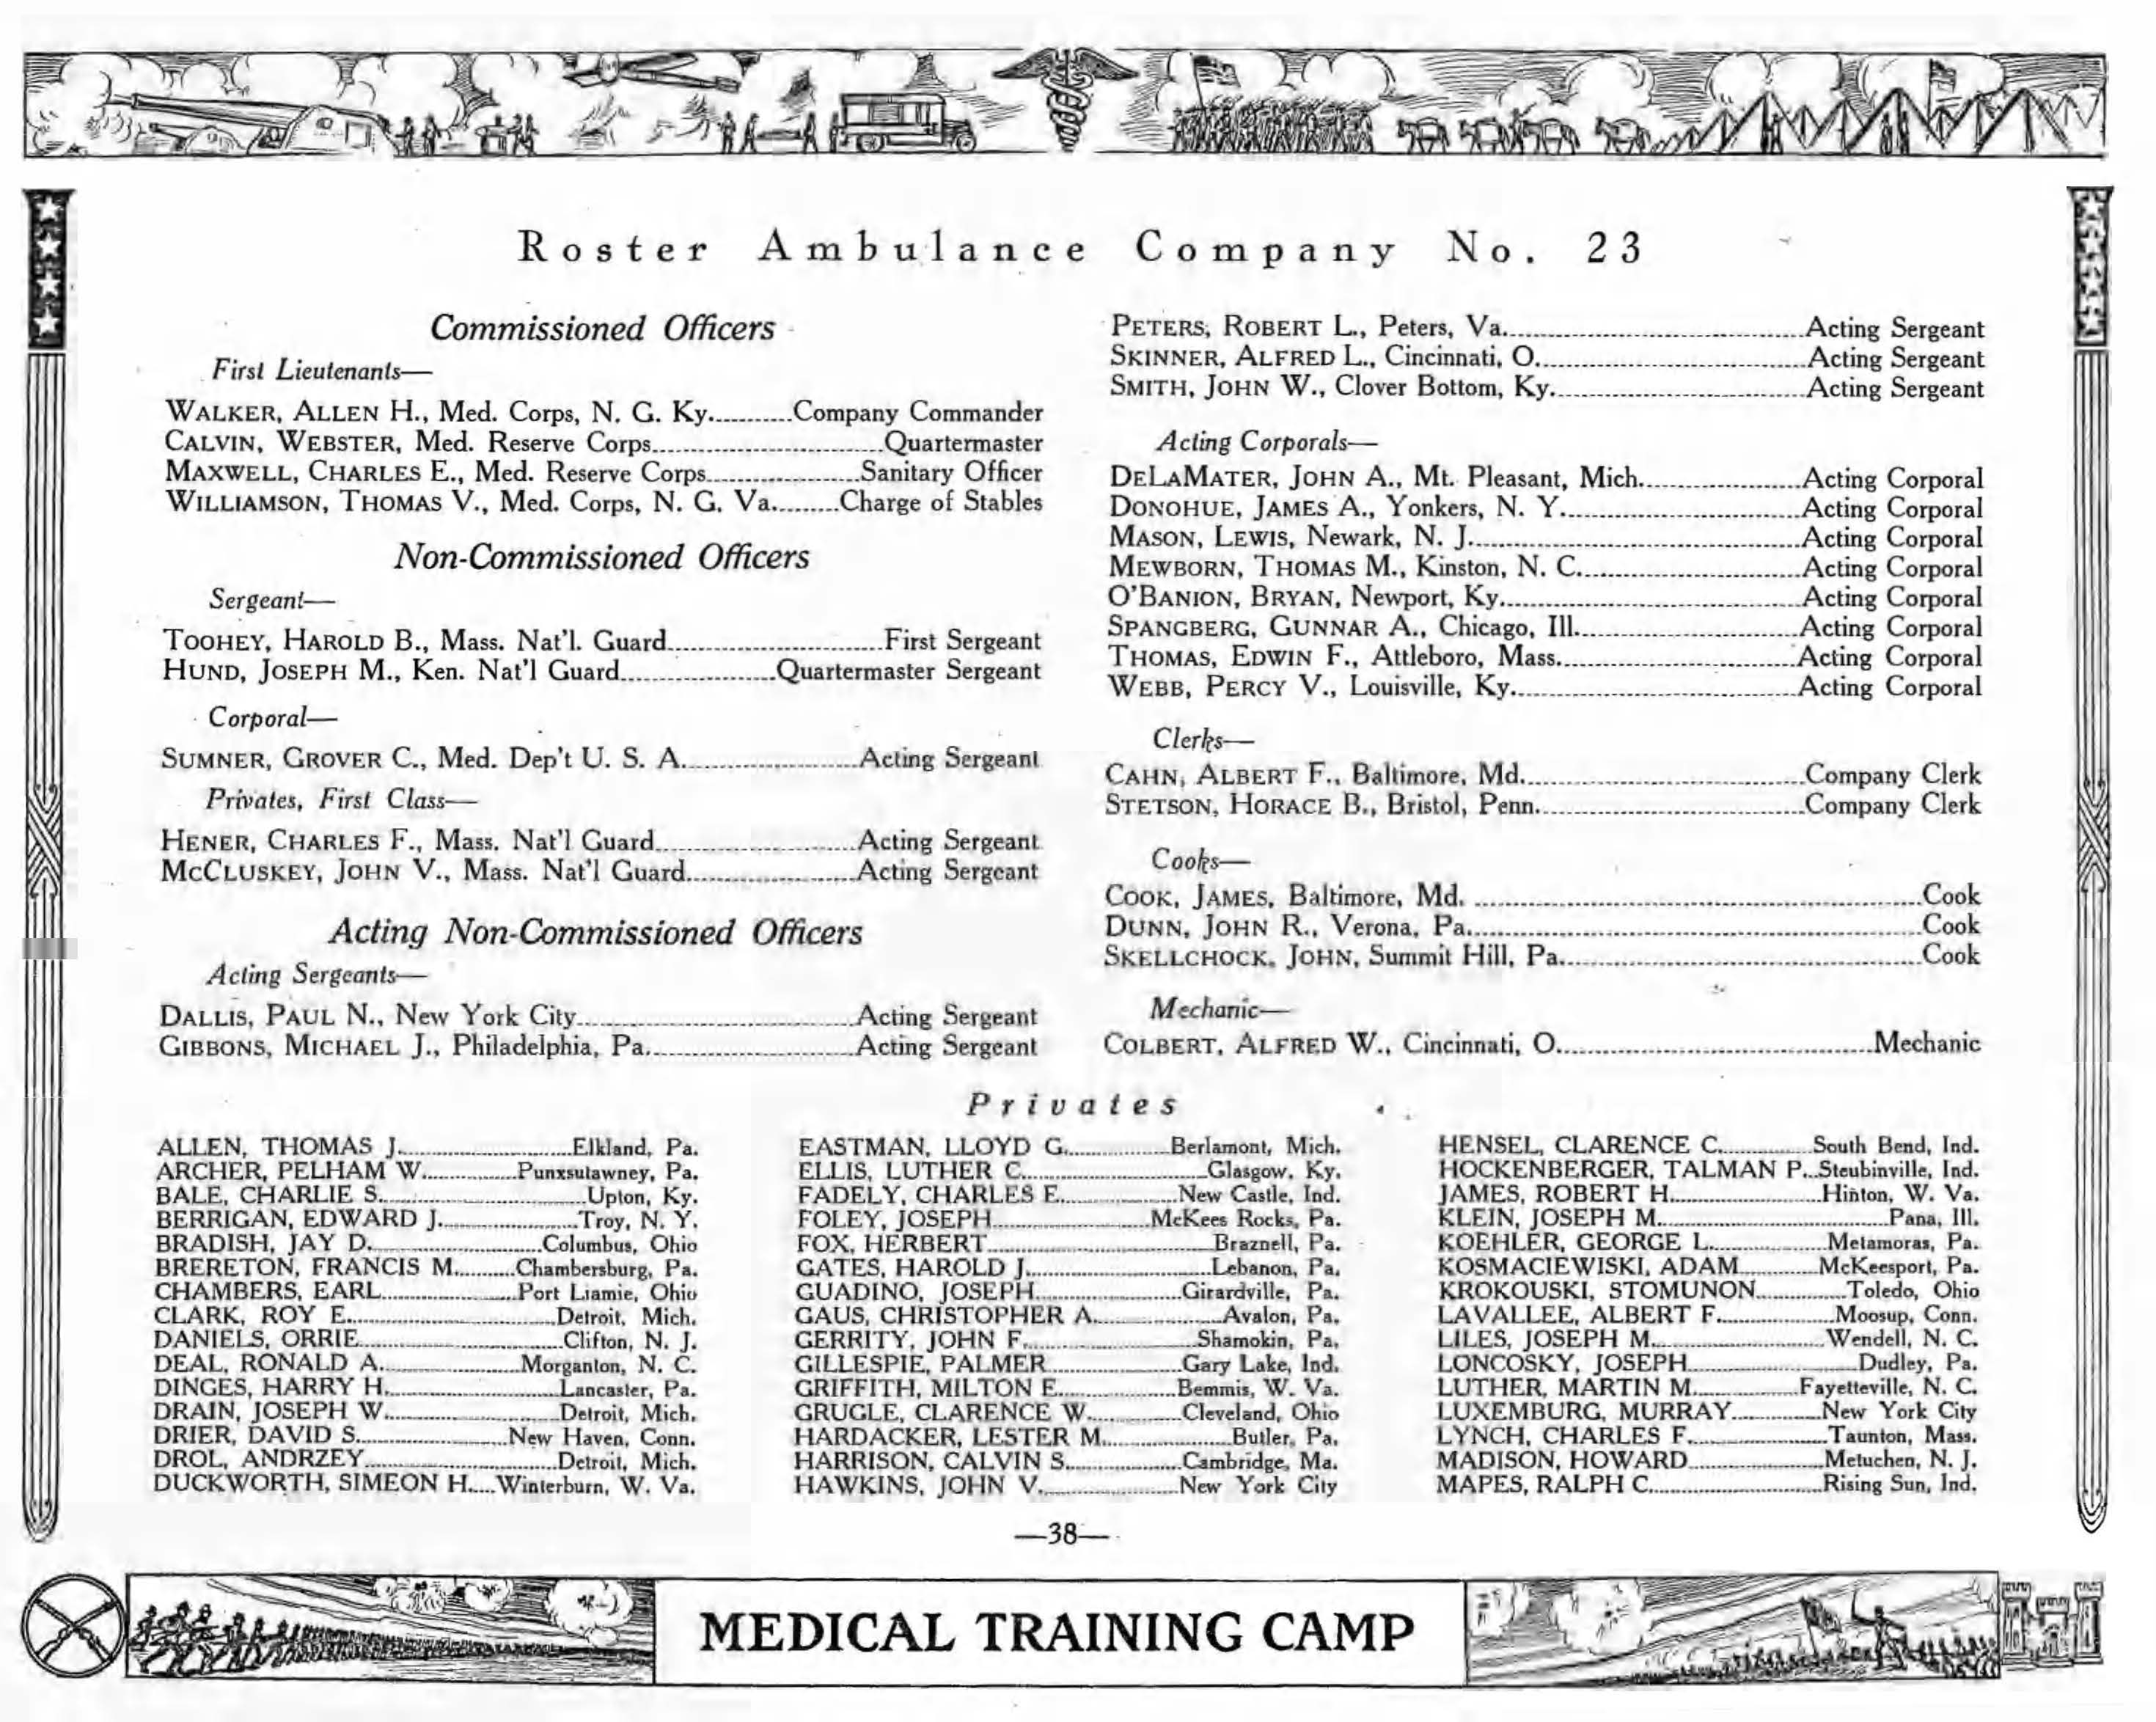 Medical Training Camp pages 38 47